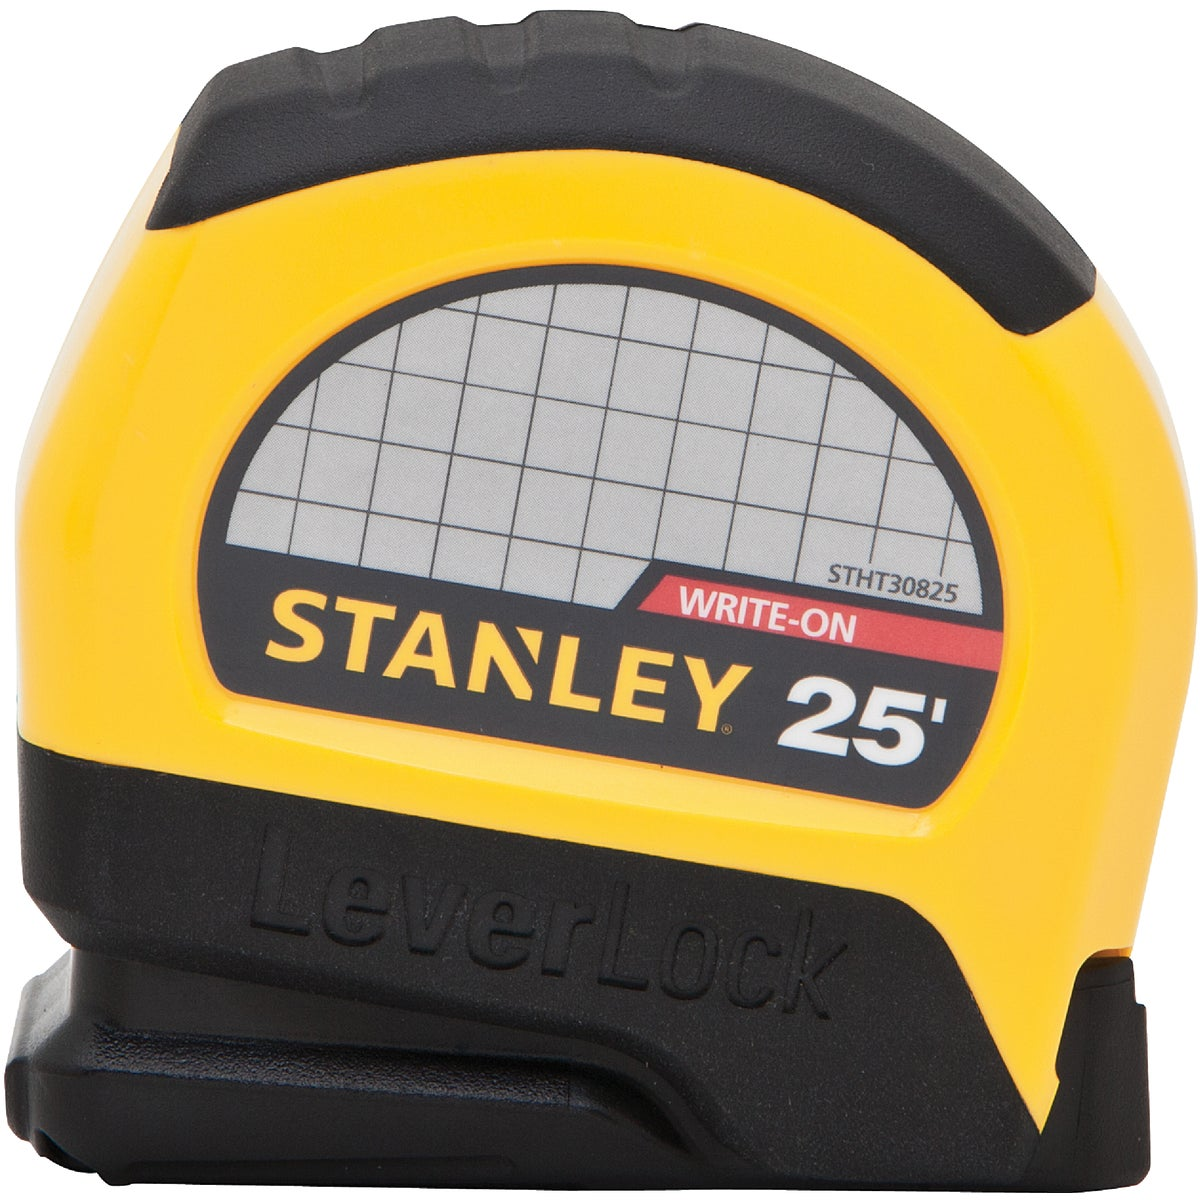 "1""X25' YEL TAPE RULE - STHT30825 by Stanley Tools"